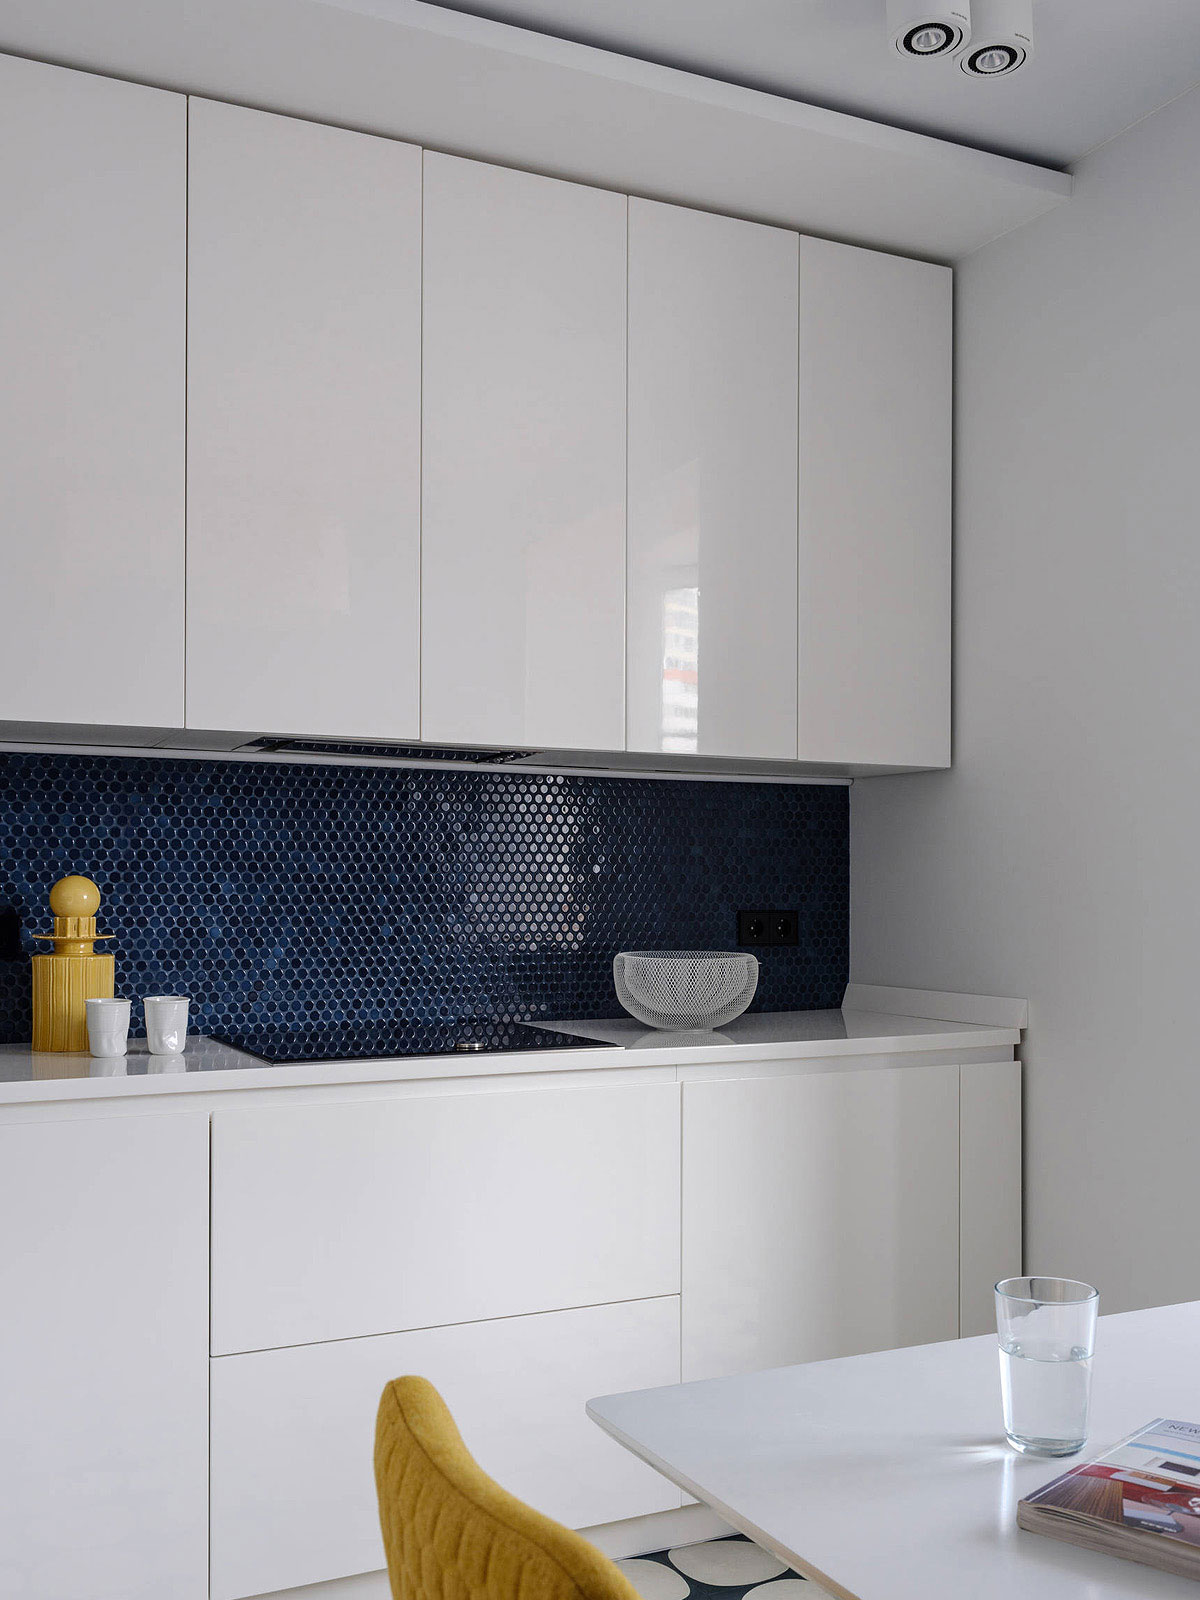 Modern White Kitchen Cabinets Blue Penny Mosaic Backsplash